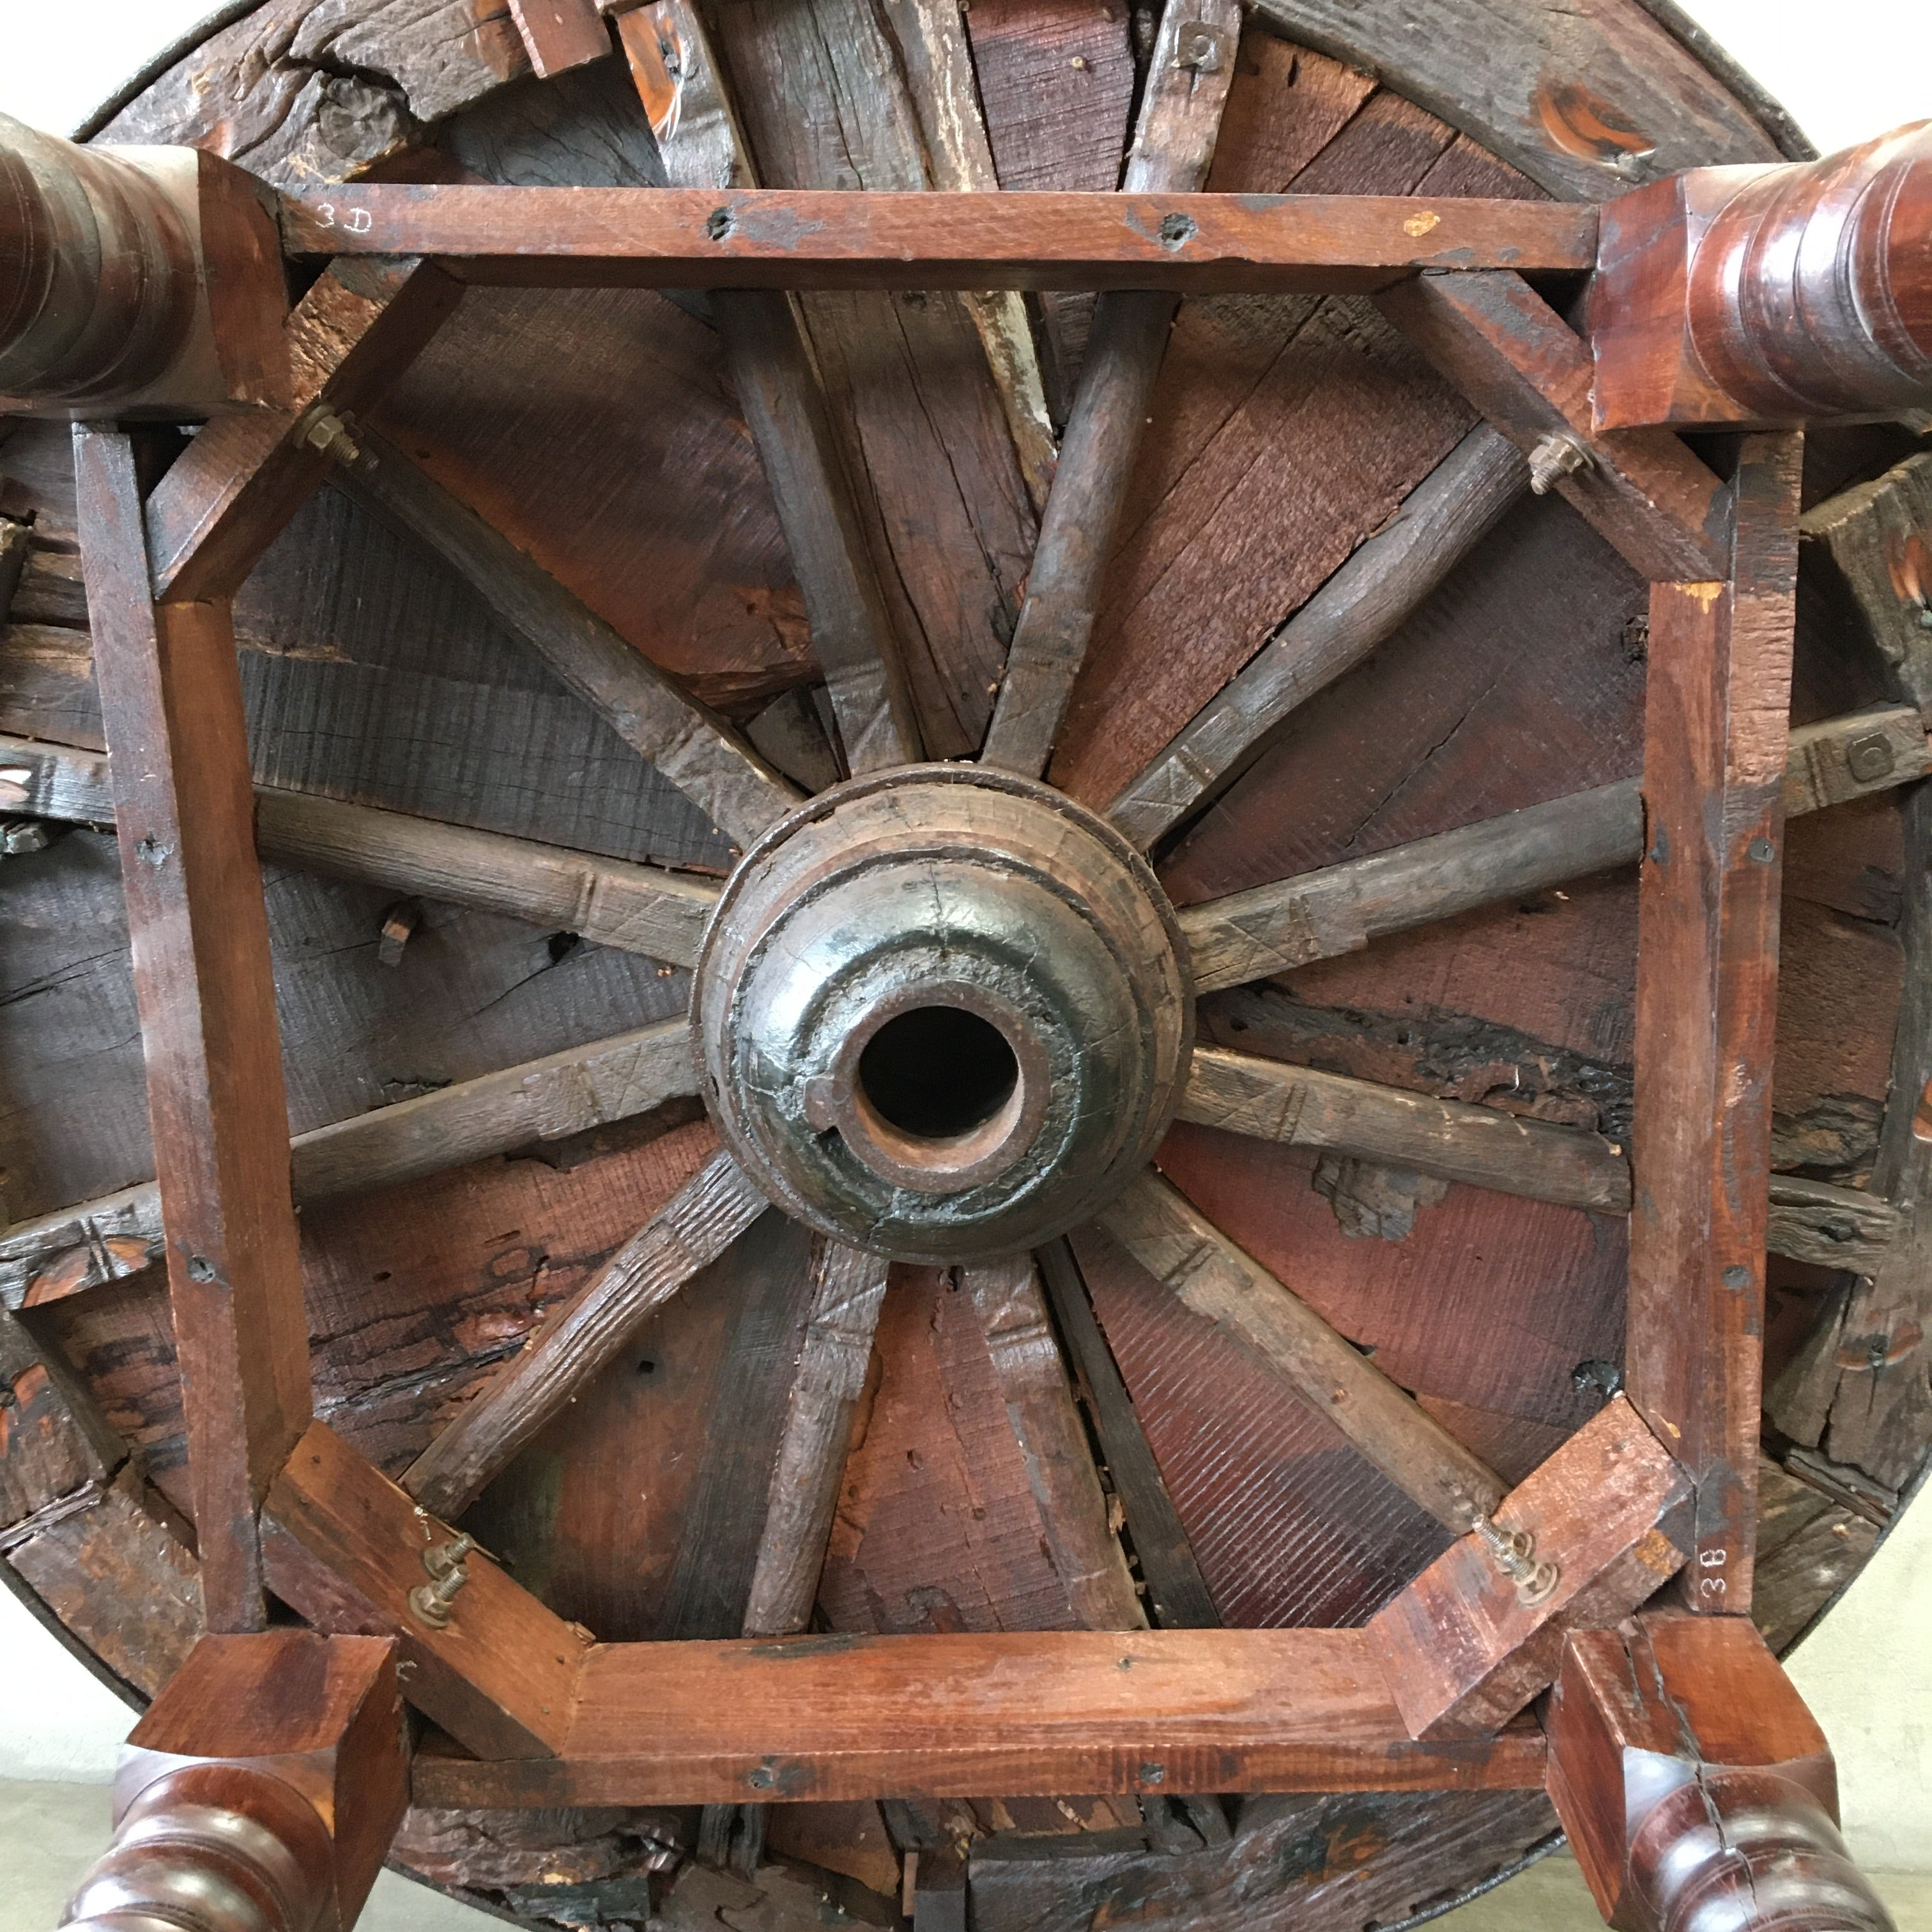 Repurposed Dining Table From Antique Wagon Wheel